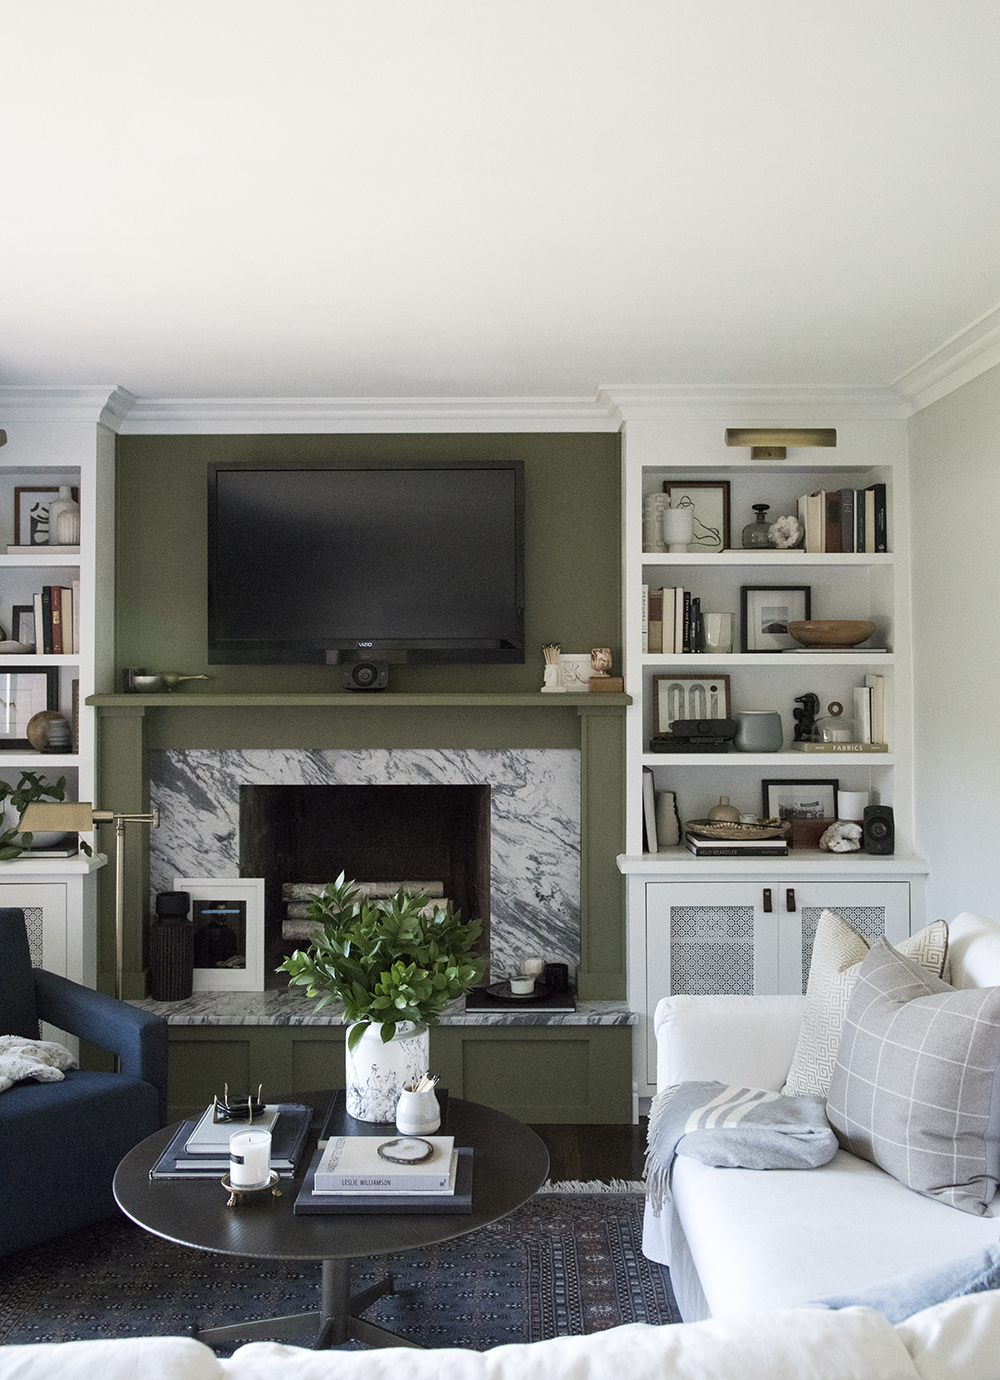 Living Room Built Ins And Marble Fireplace Room For Tuesday